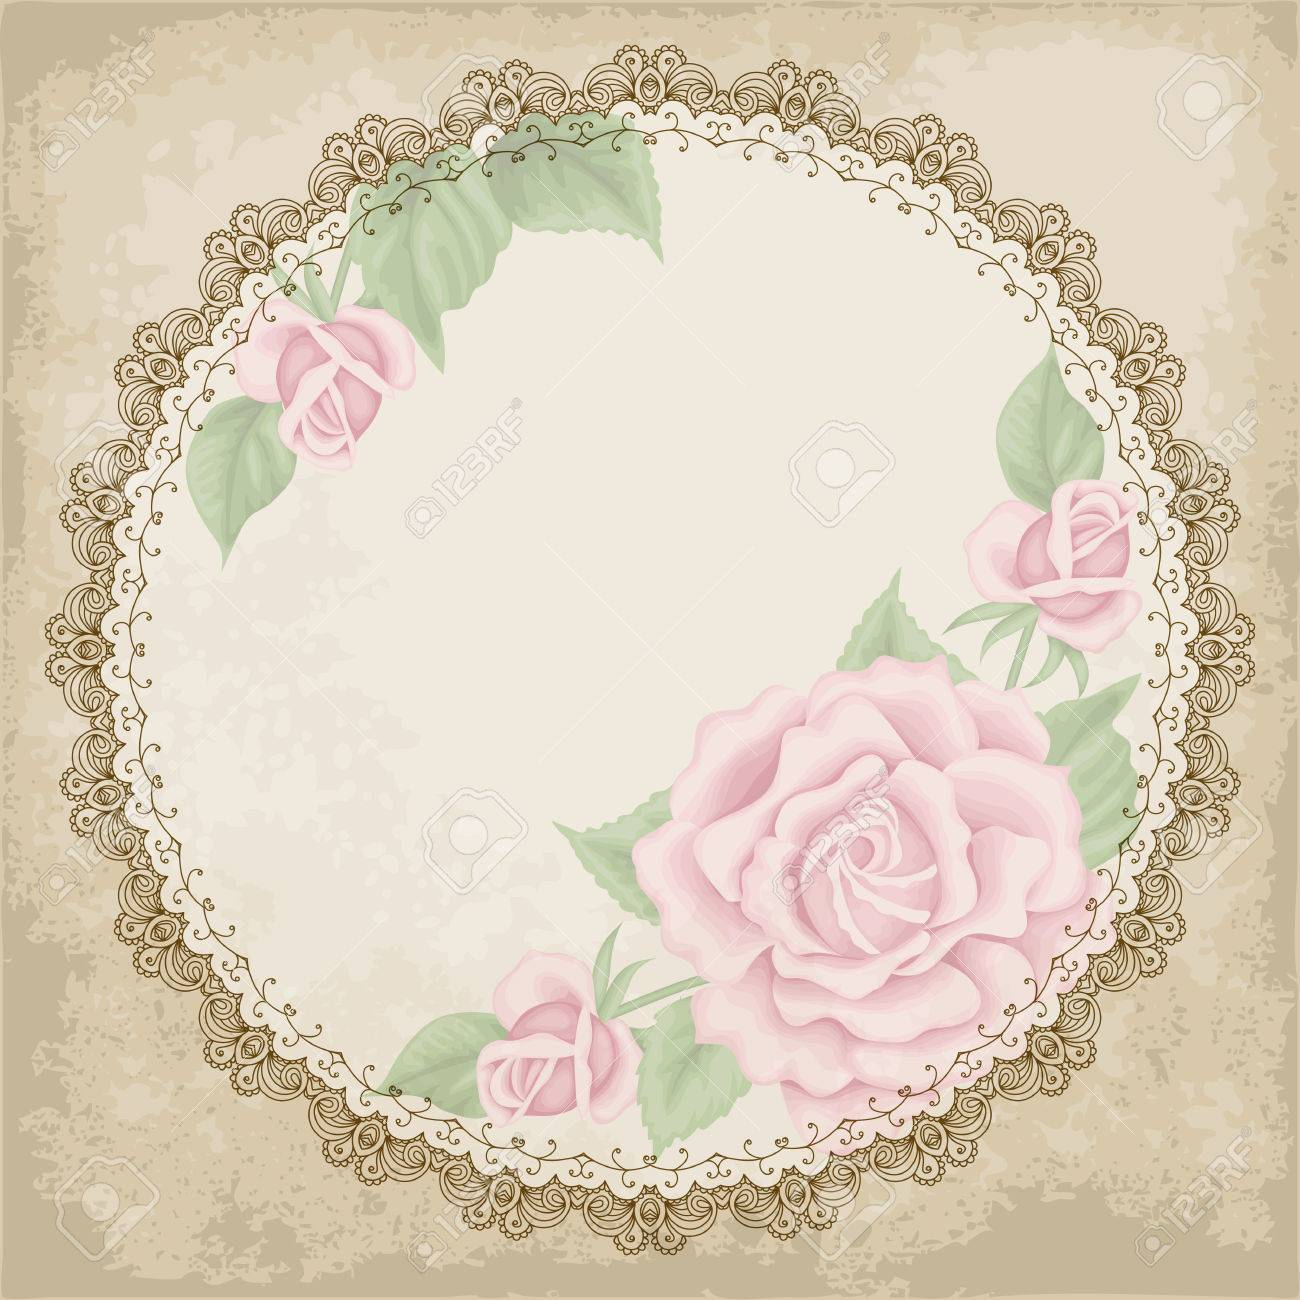 Retro Background With Colorful Roses Lace Border And Old Paper Shabby Chic Vector Illustration